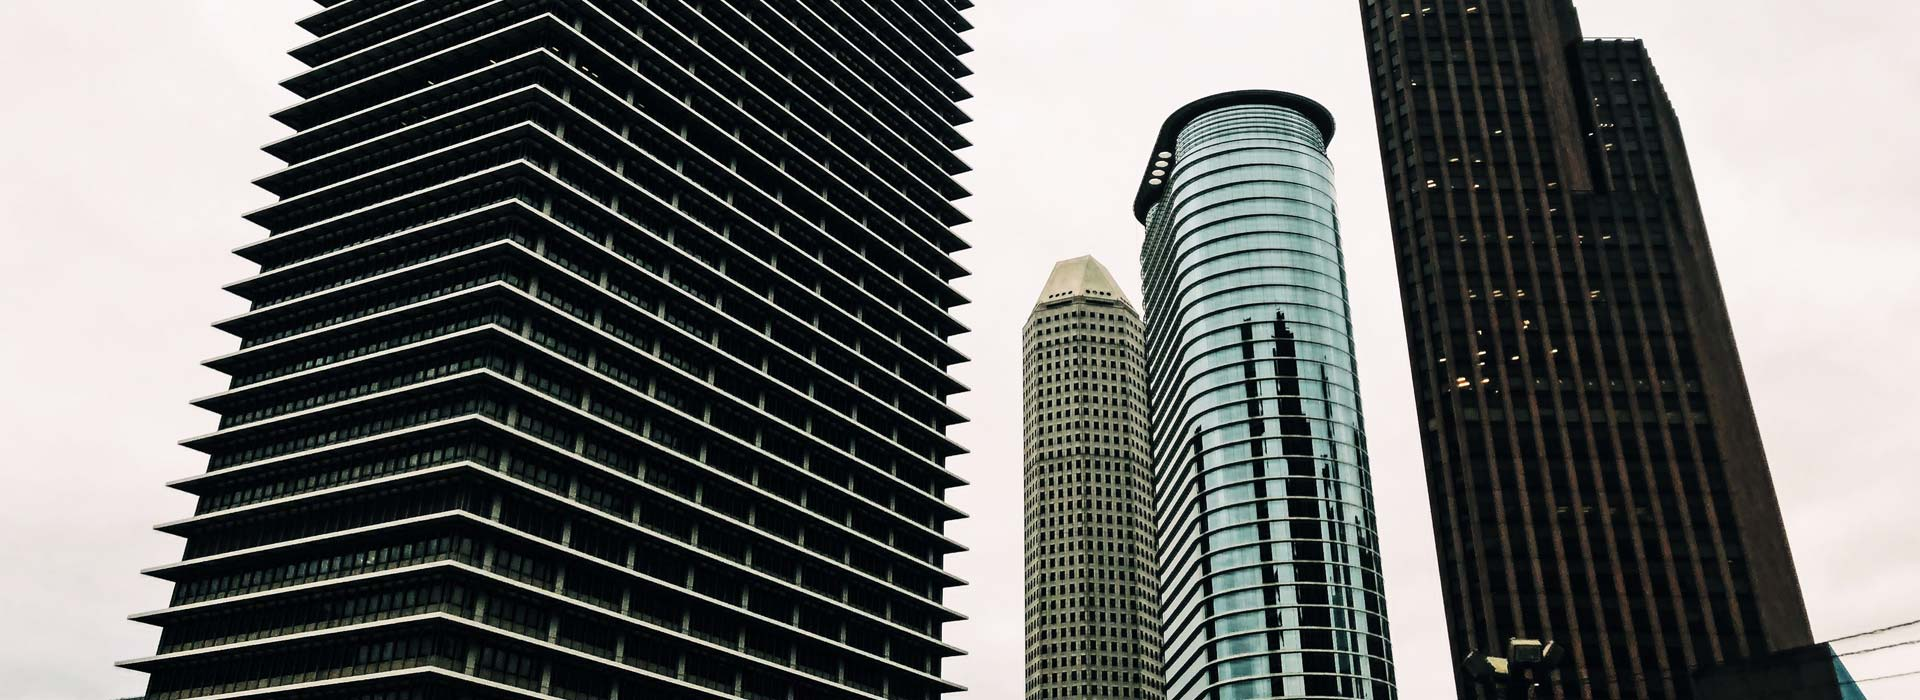 Four tall, commercial high-rise buildings stand next to each other